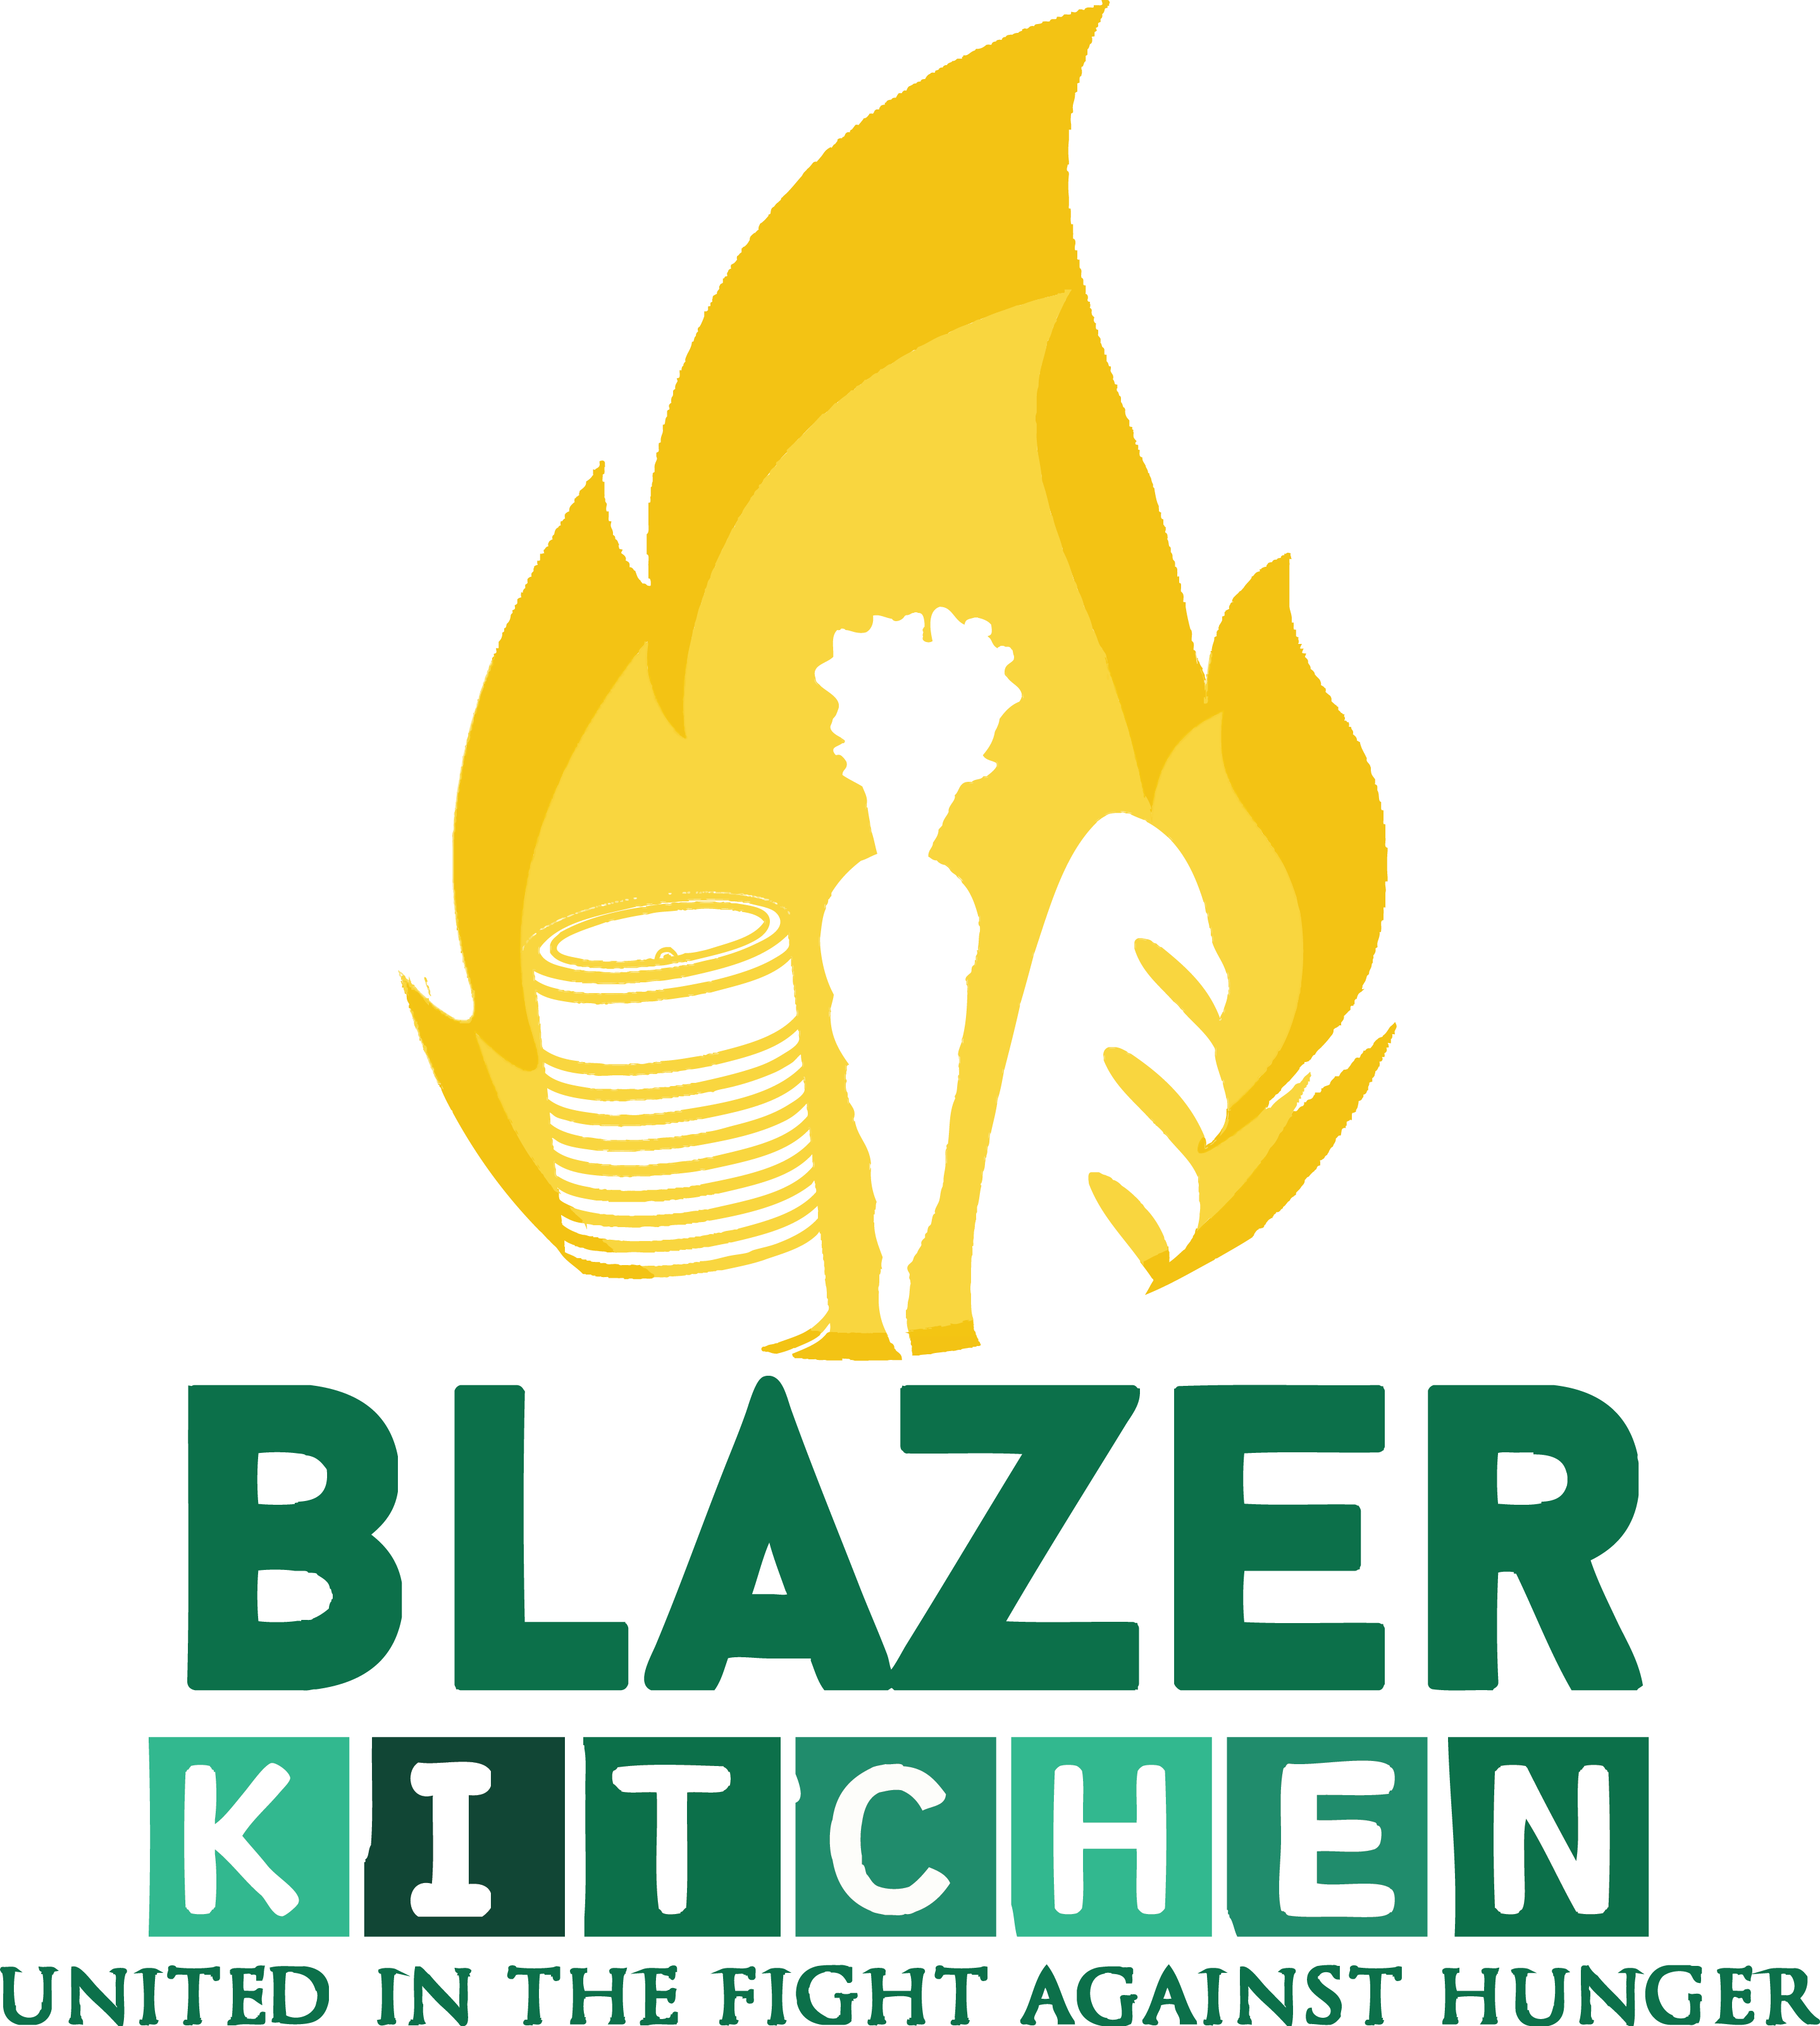 Blazer Kitchen Logo Large Text Small